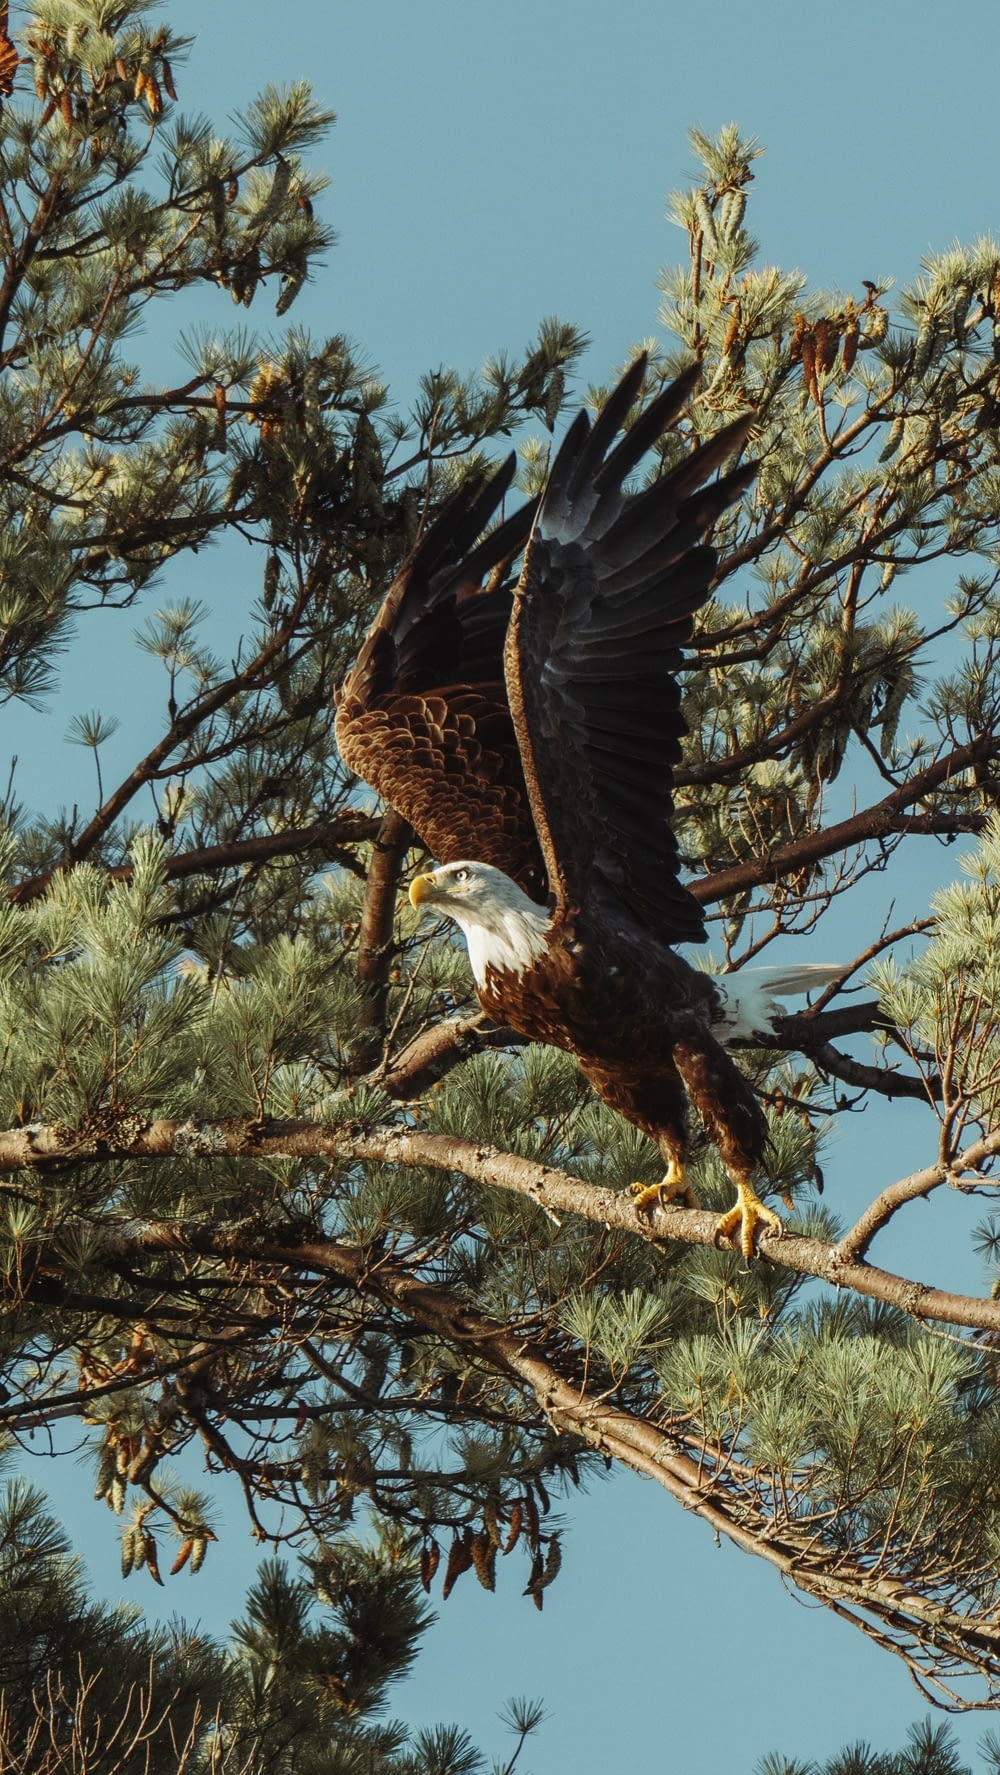 black and white eagle on brown tree branch during daytime